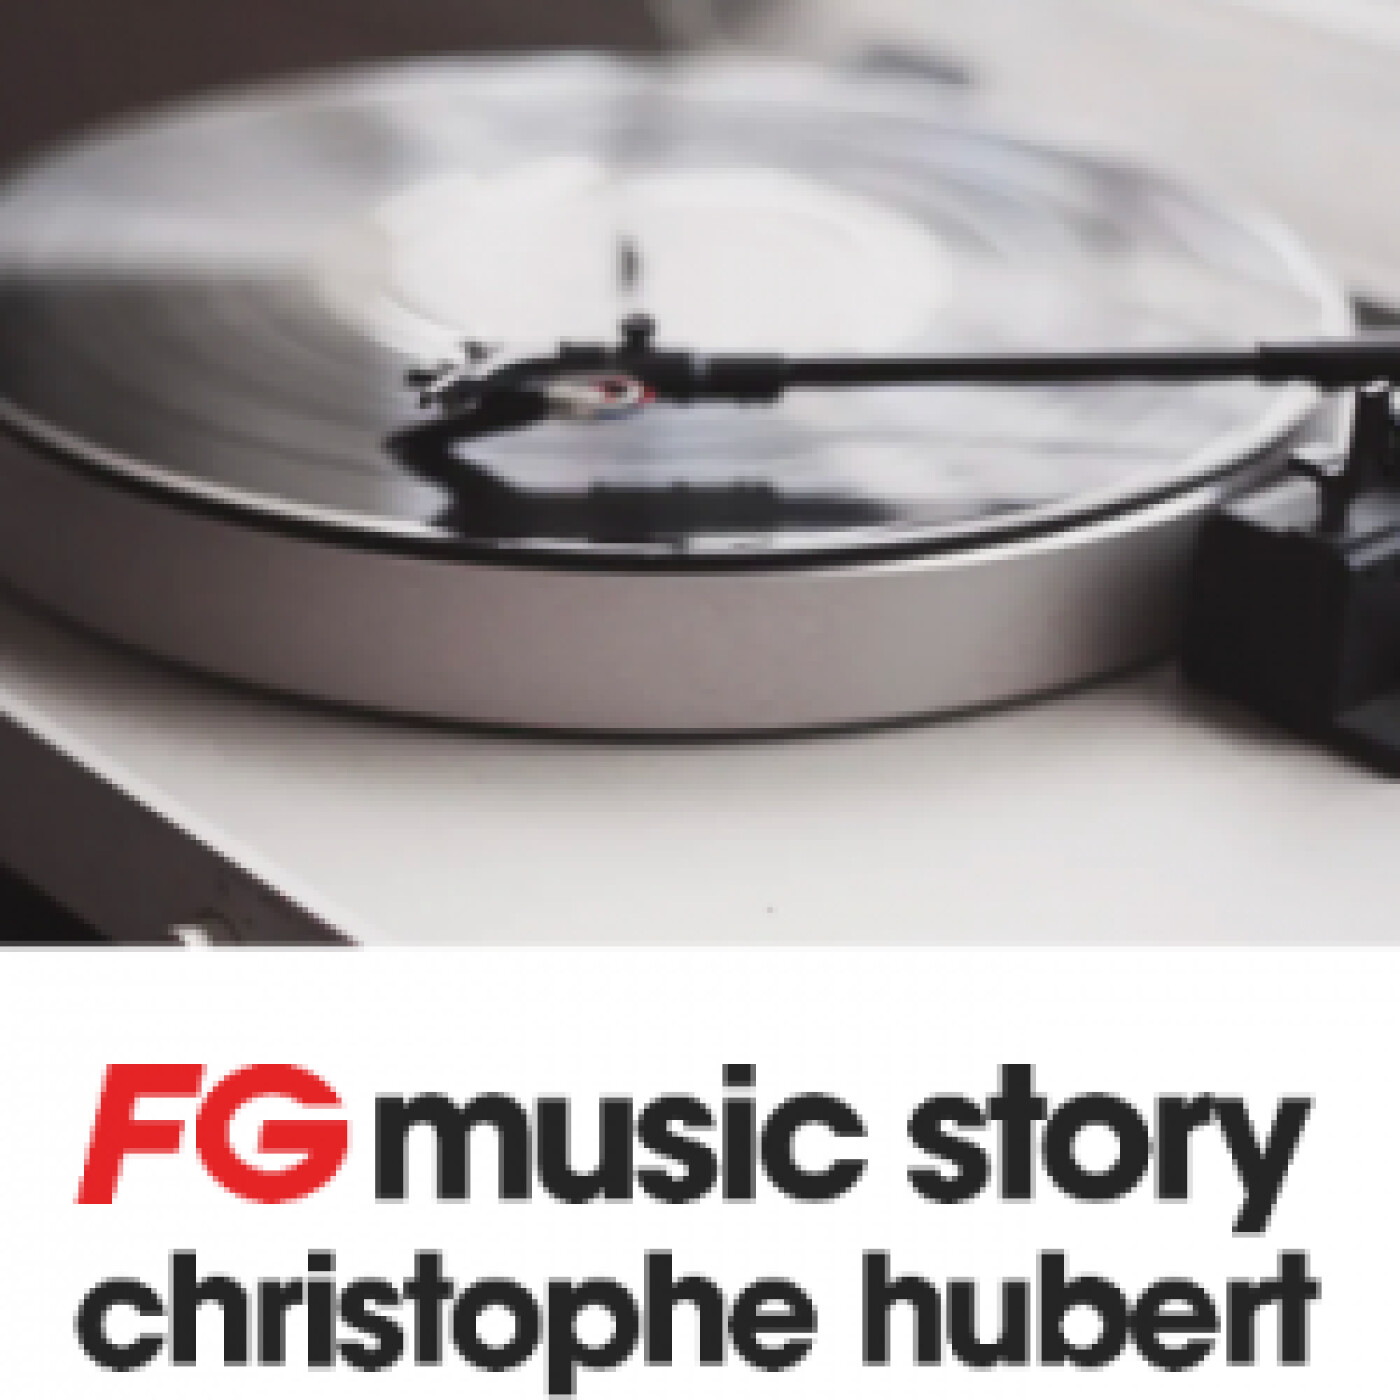 FG MUSIC STORY : FREED FROM DESIRE